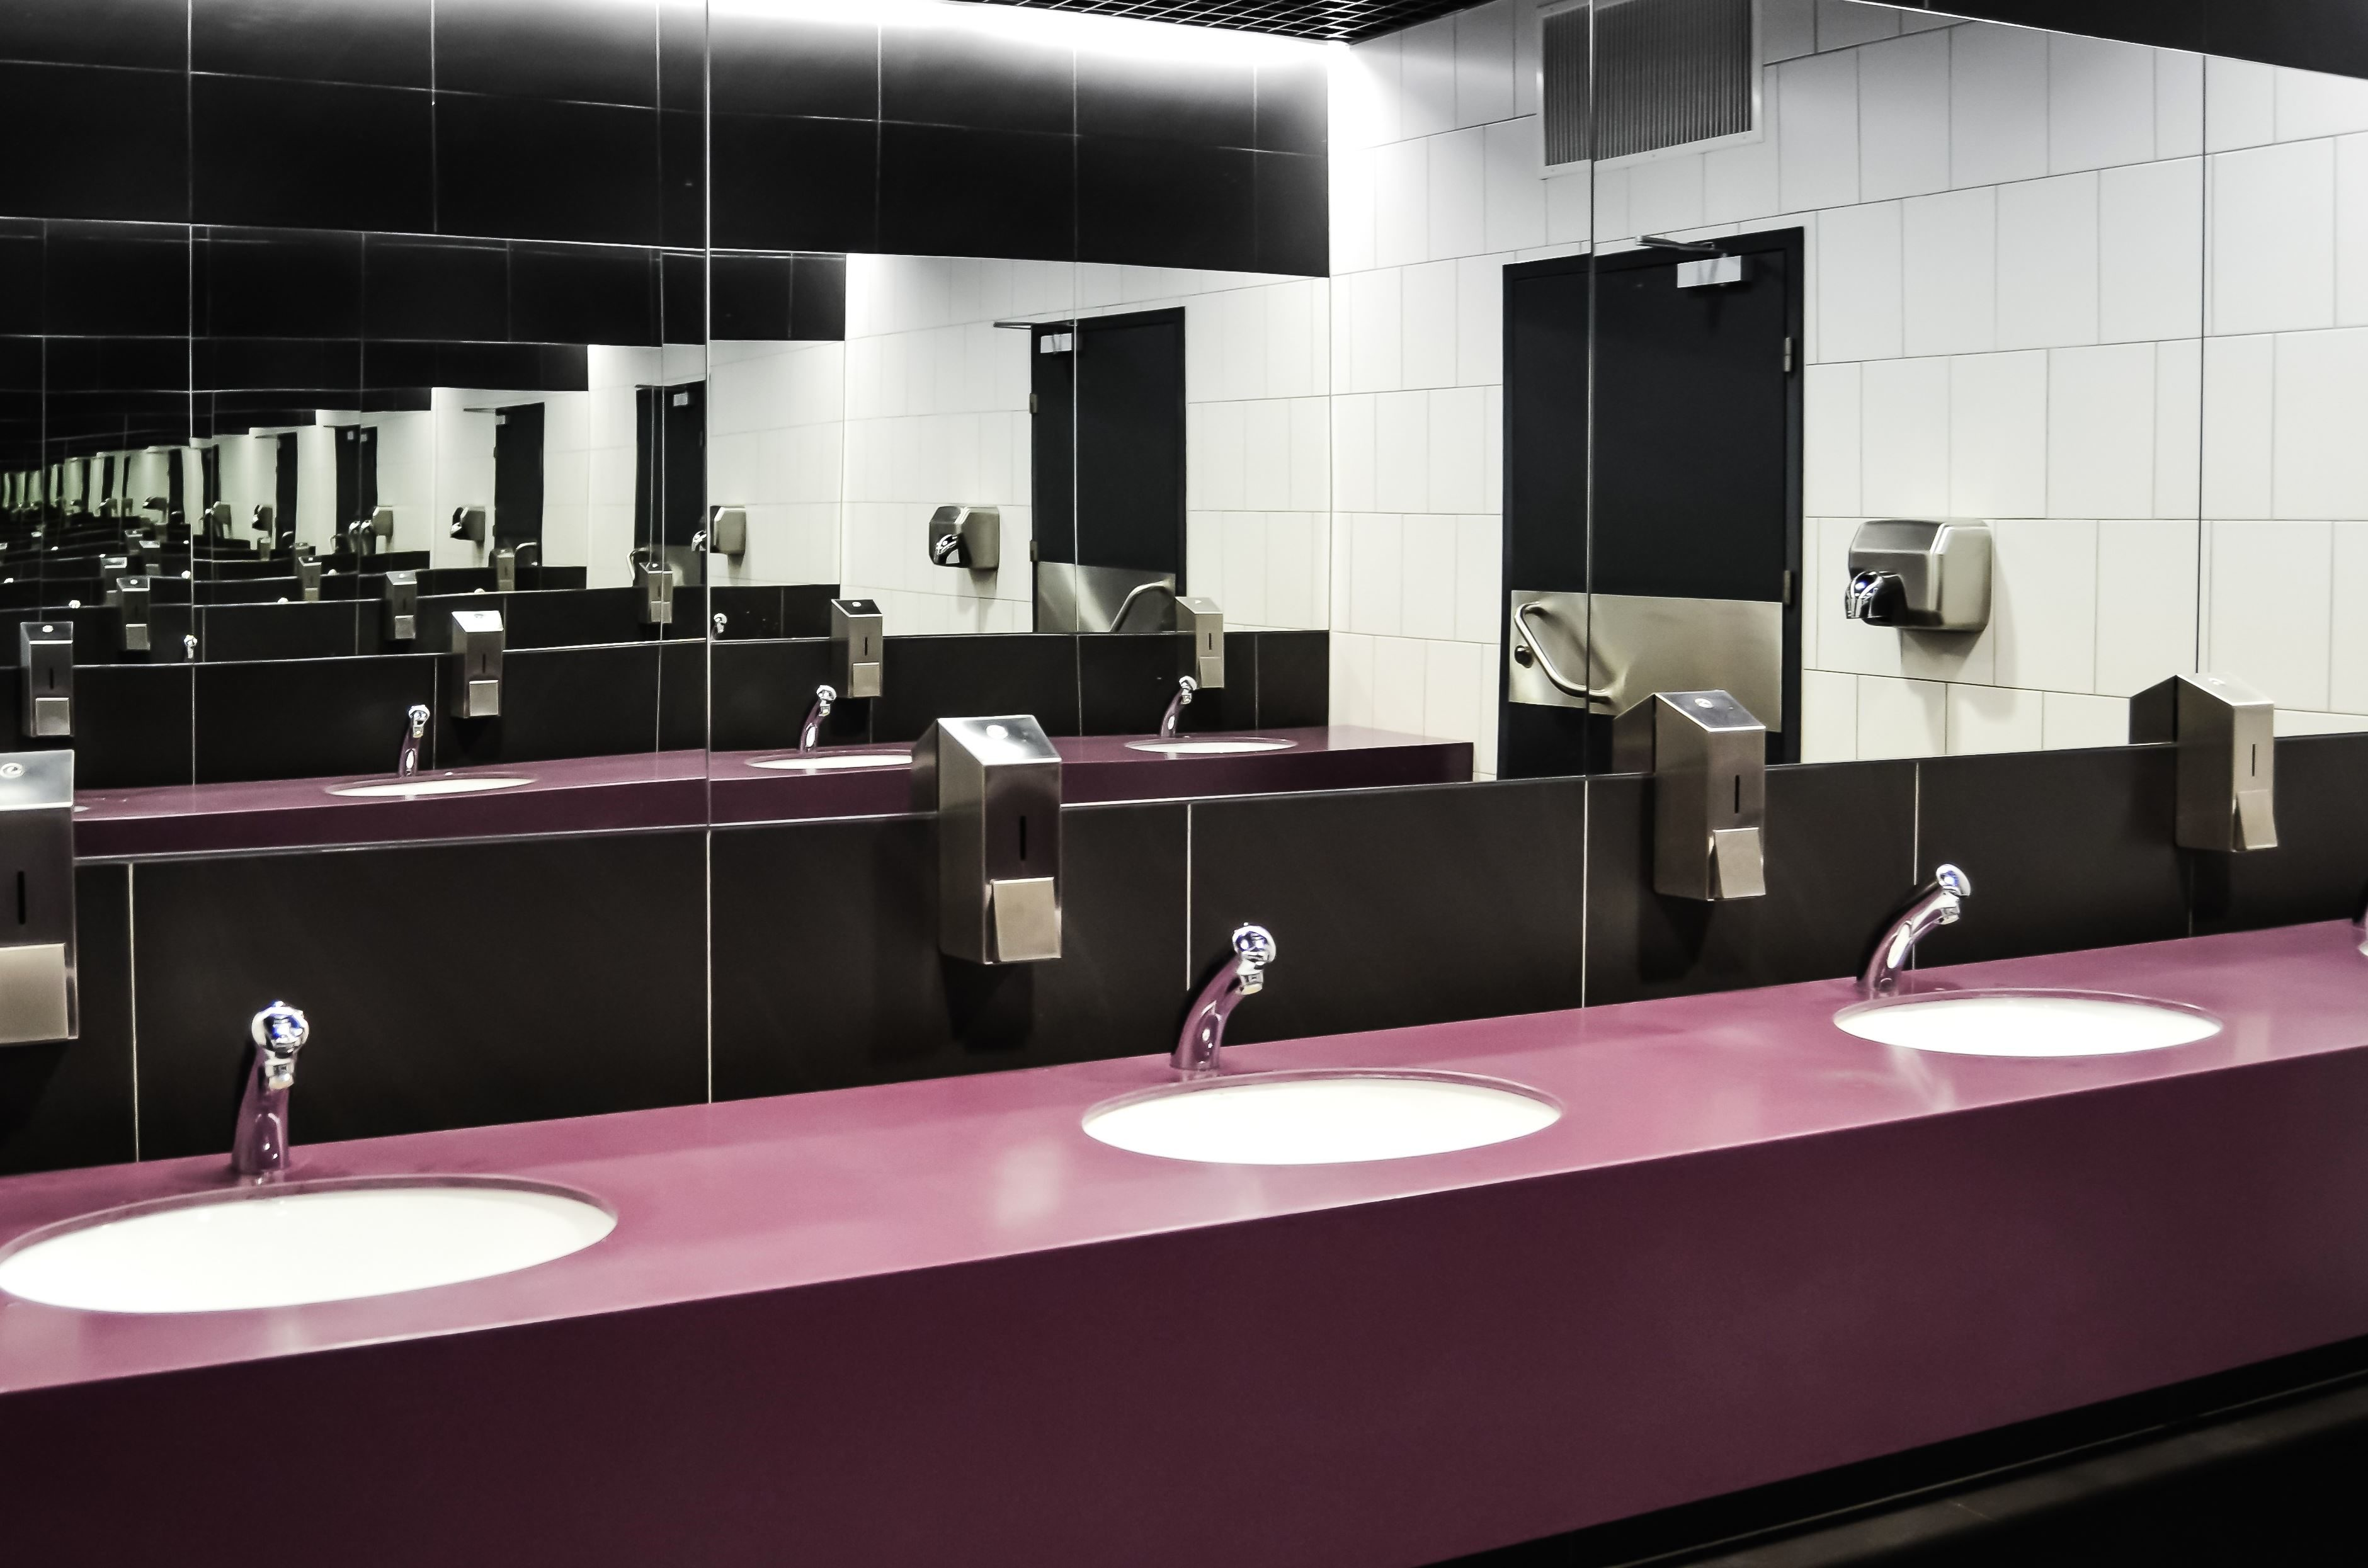 Free picture: toilet, washbasin, faucet, mirror, hygiene, room ...